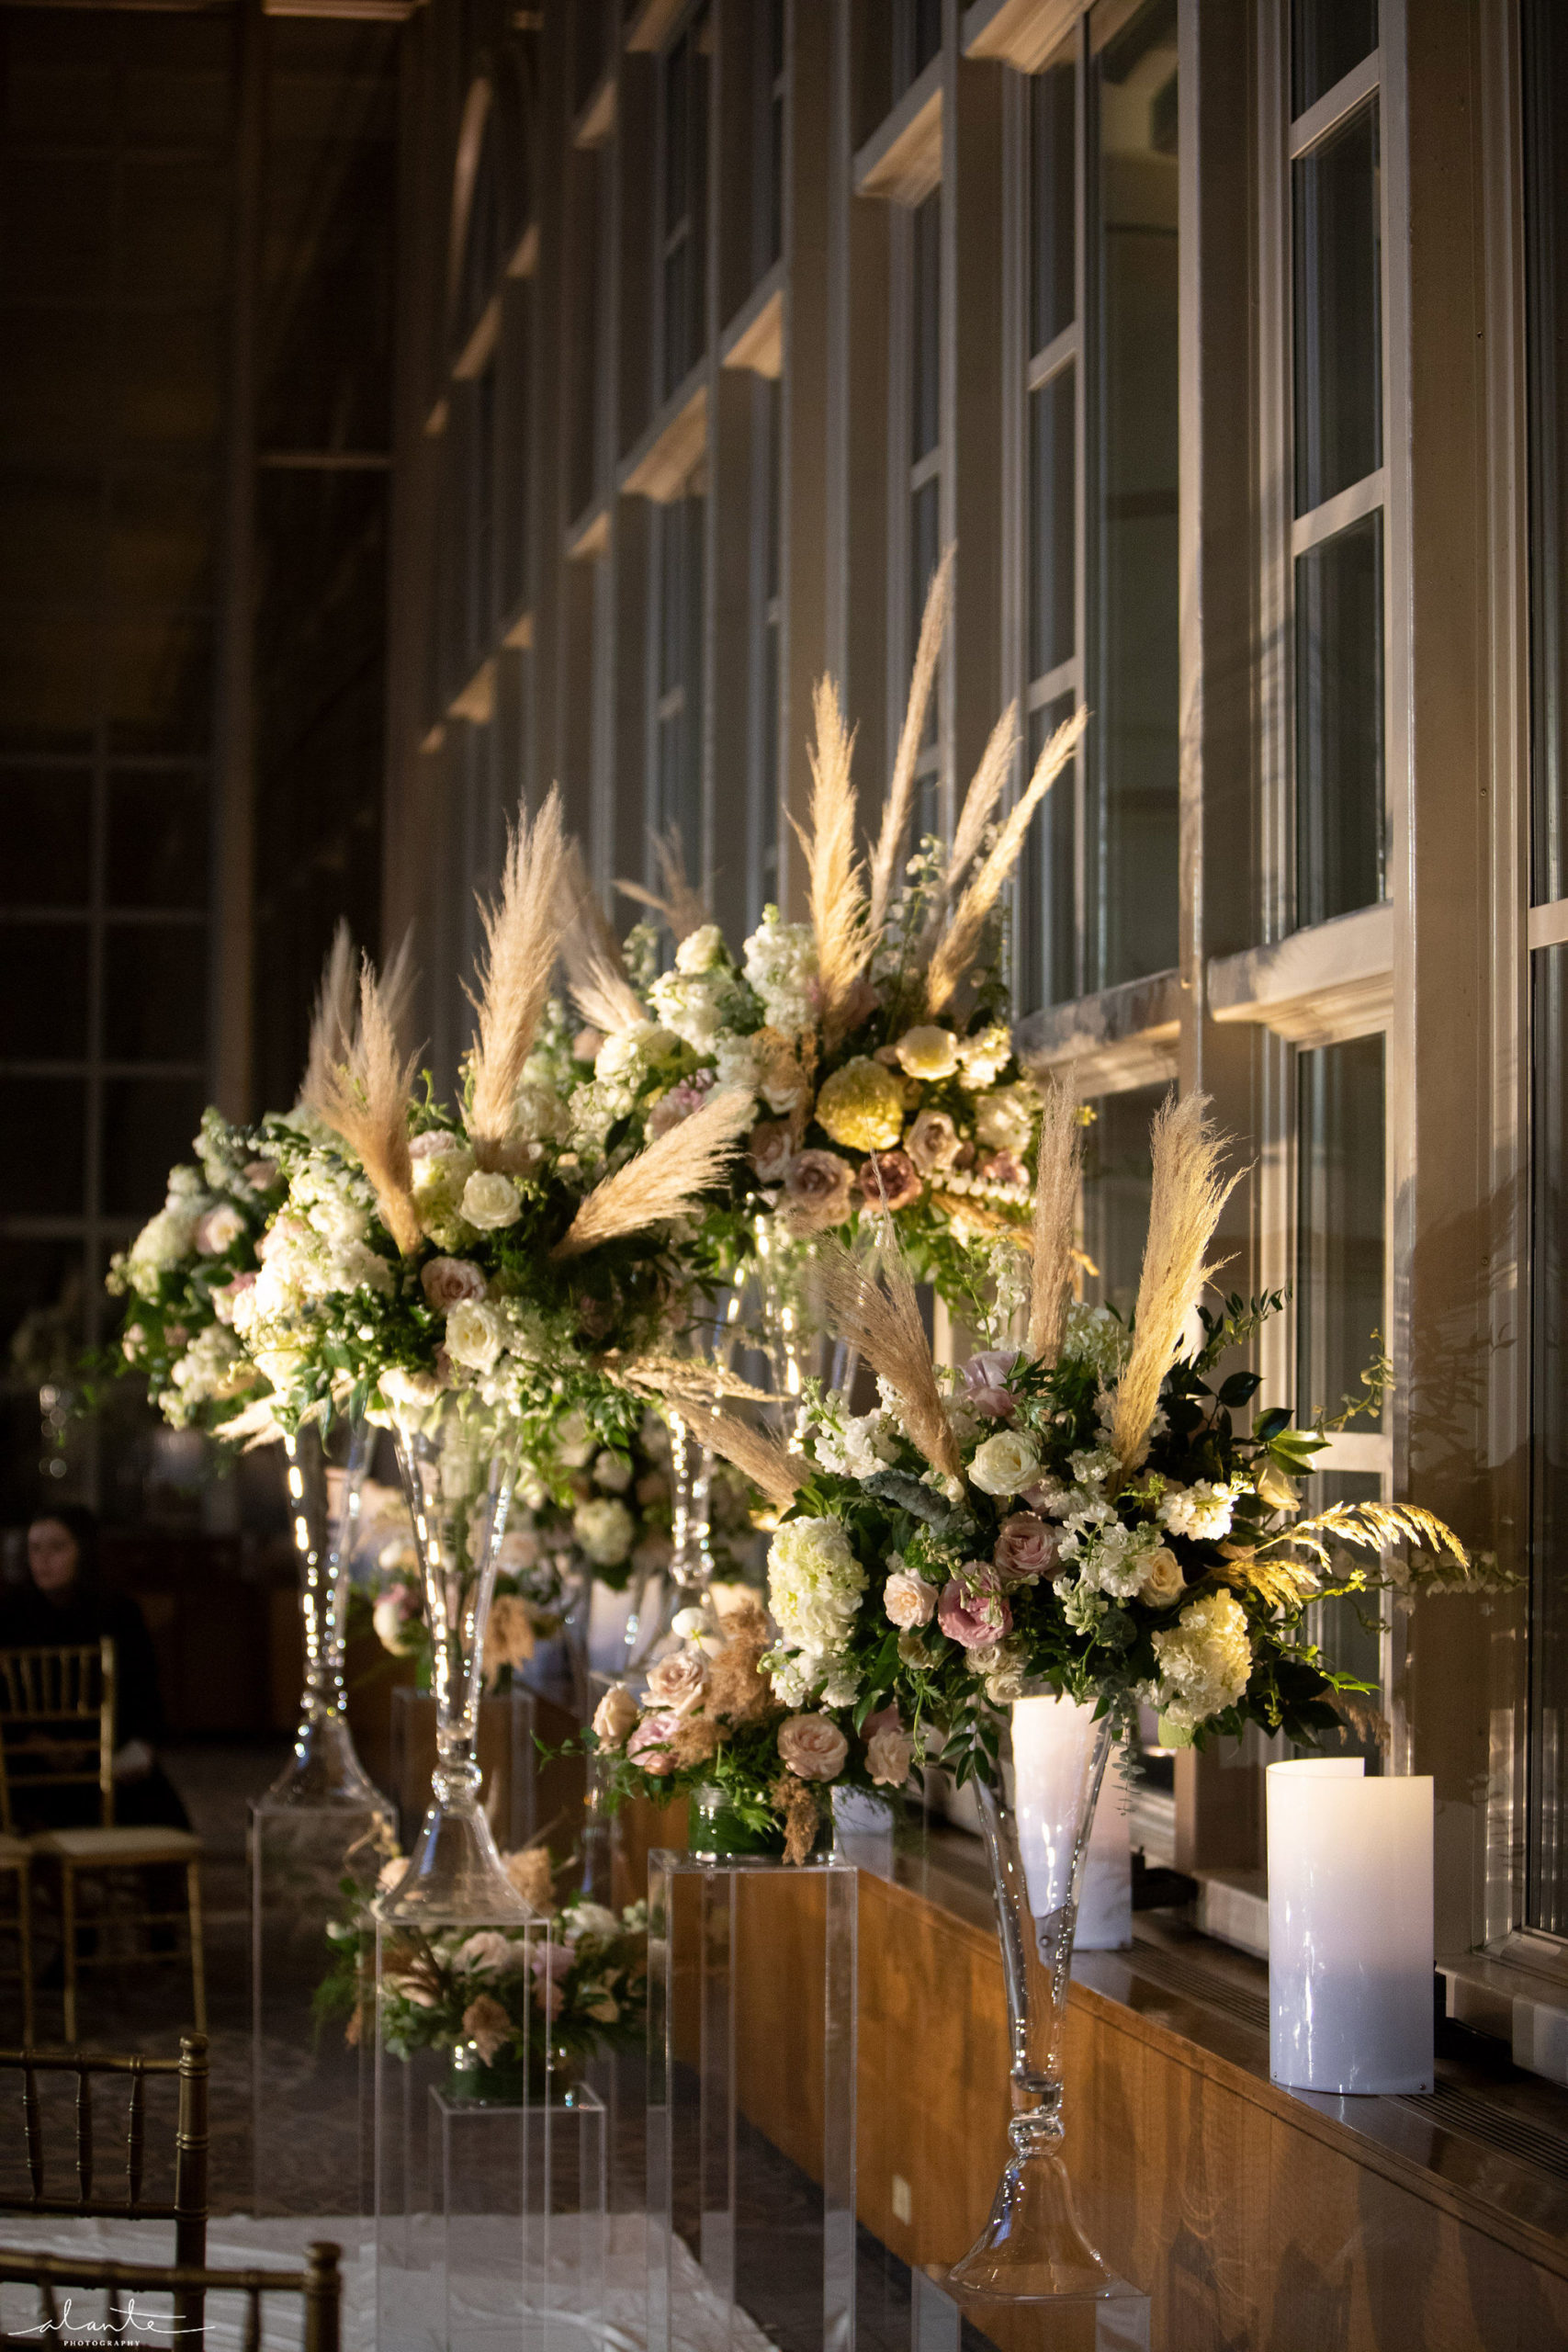 New Years Eve wedding ceremony alter floral arrangements featuring pampas grasses and white and blush flowers.